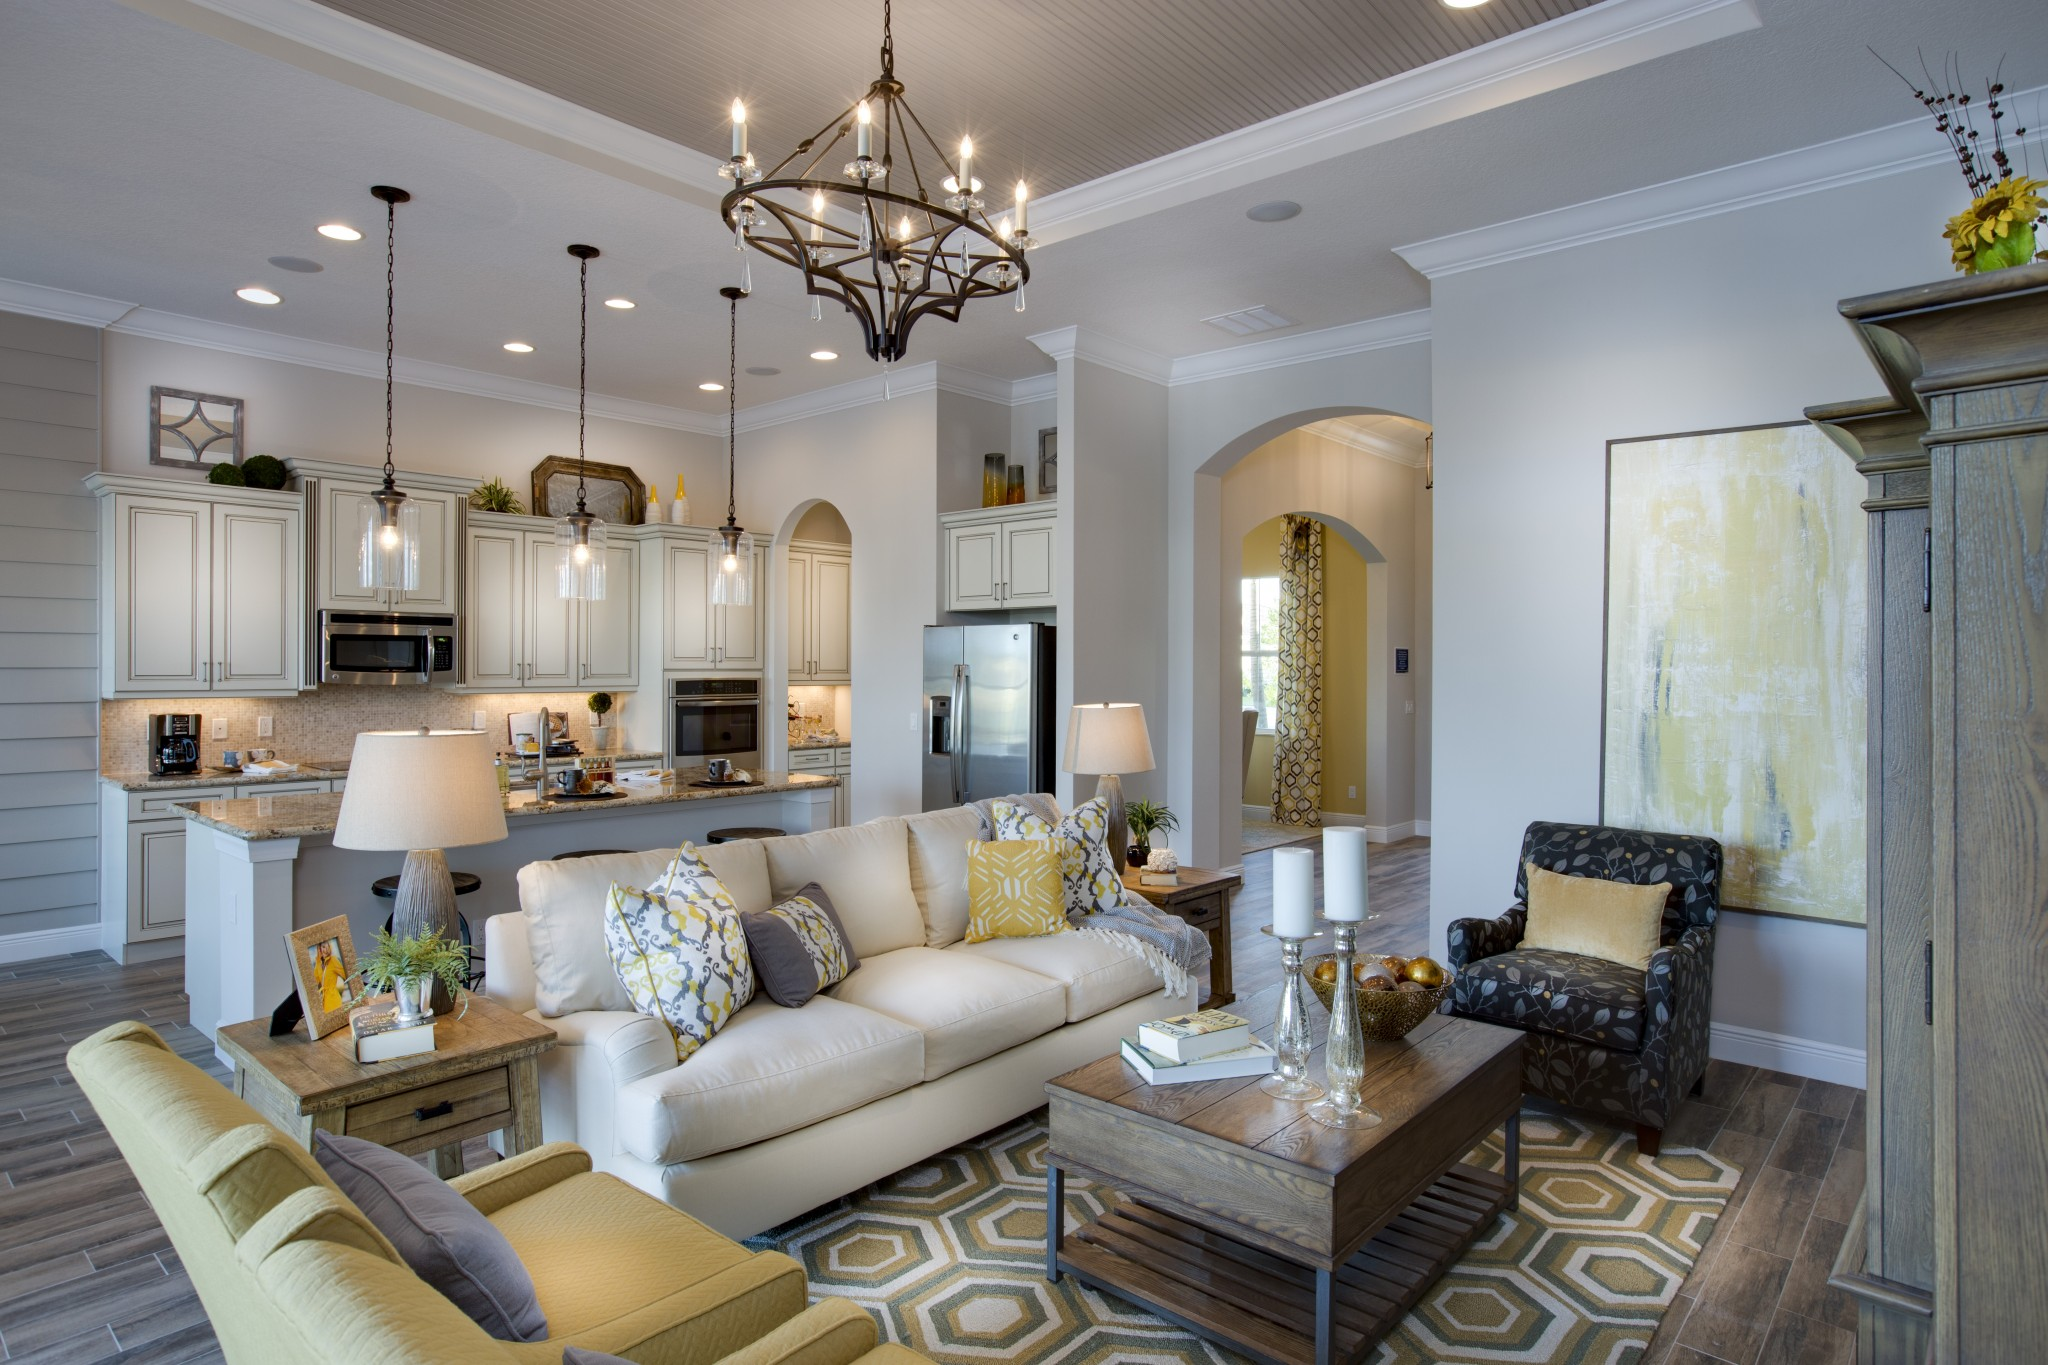 Model homes gallery House model interior design